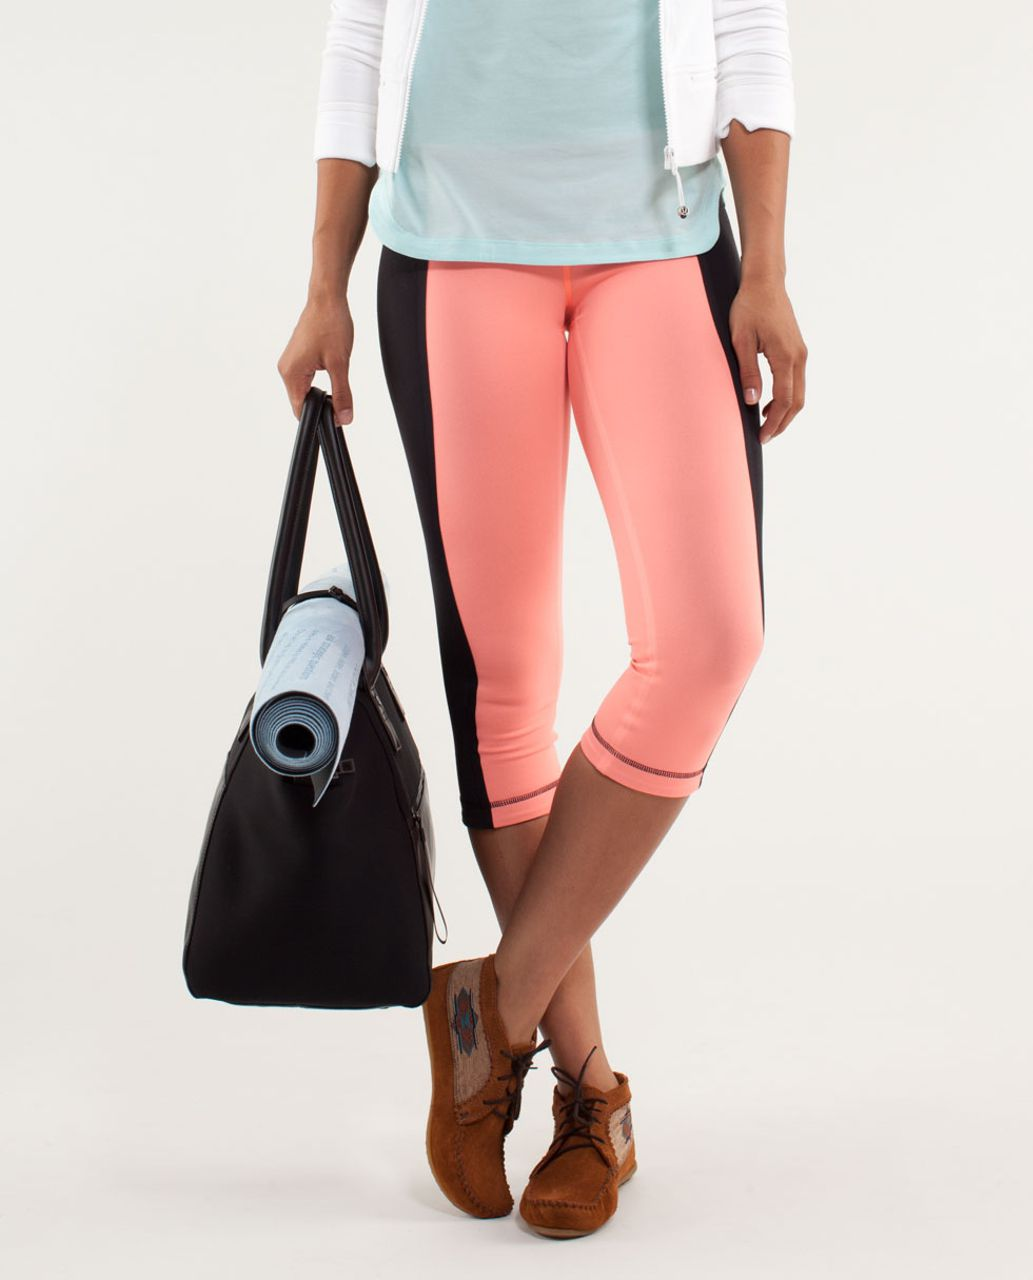 Lululemon Vinyasa To Vino Bag *Neoprene - Black